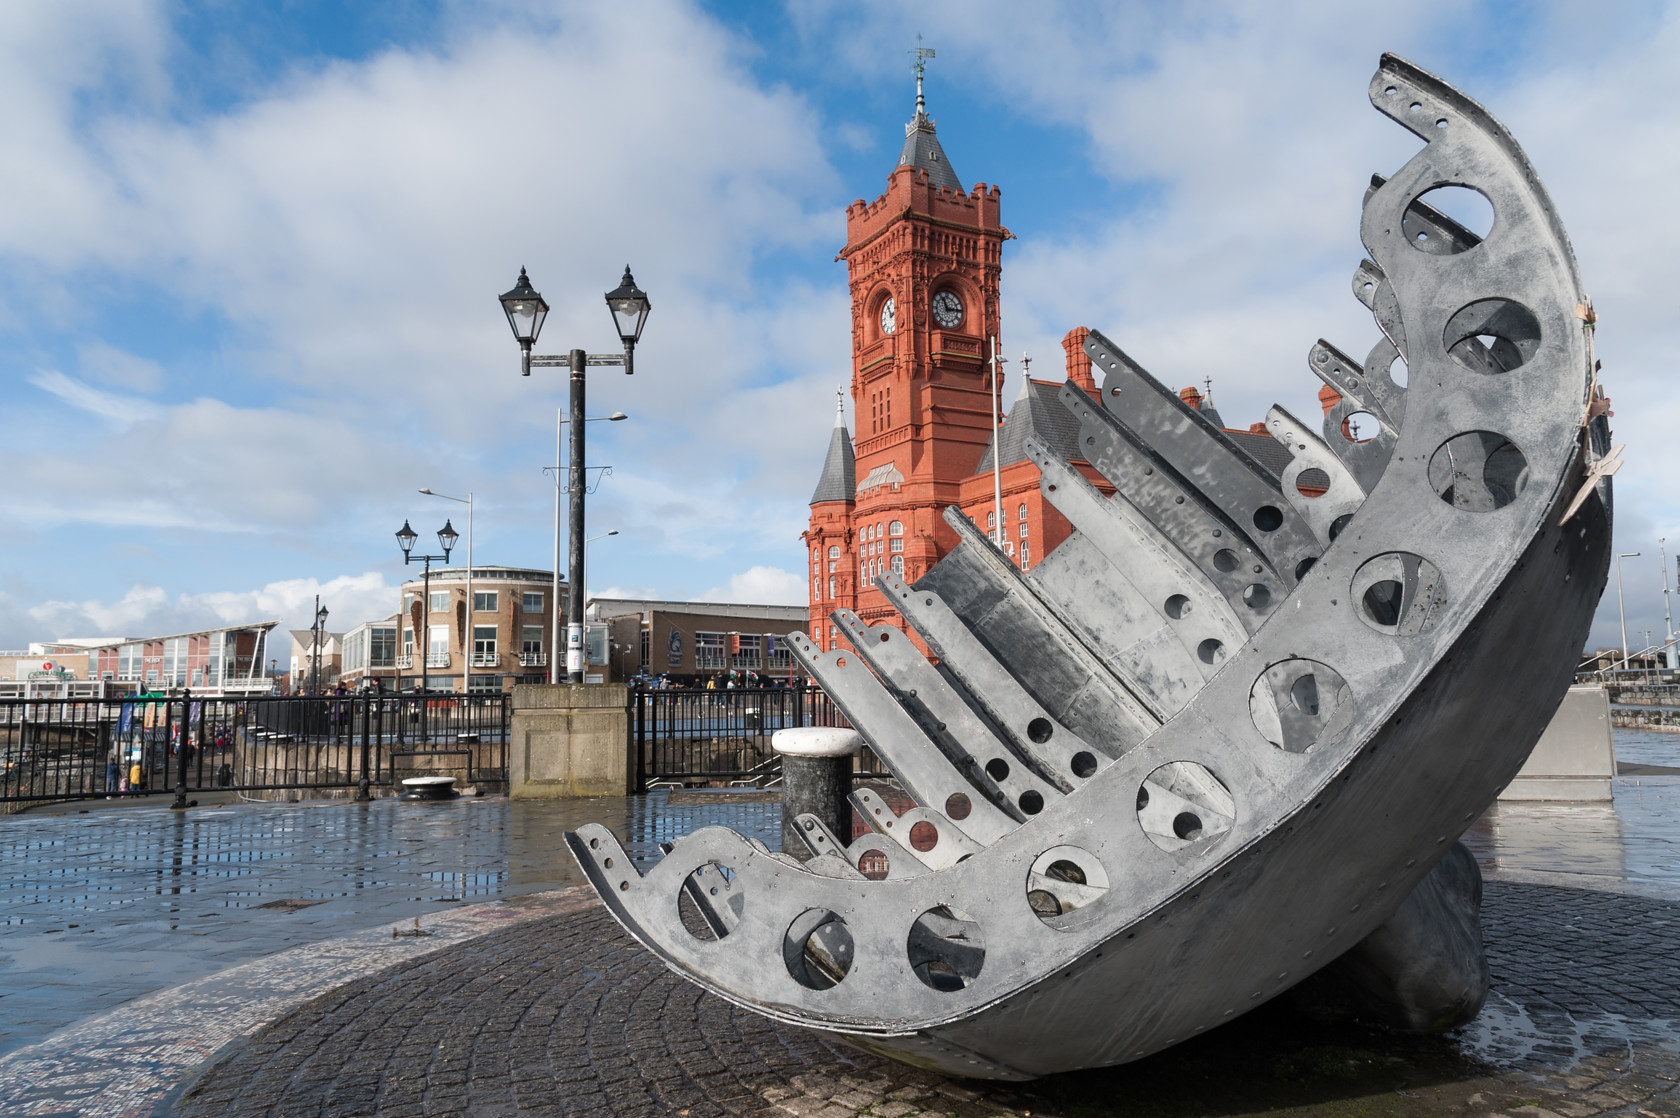 pierhead, cardiff bay (ref ukb 60) 